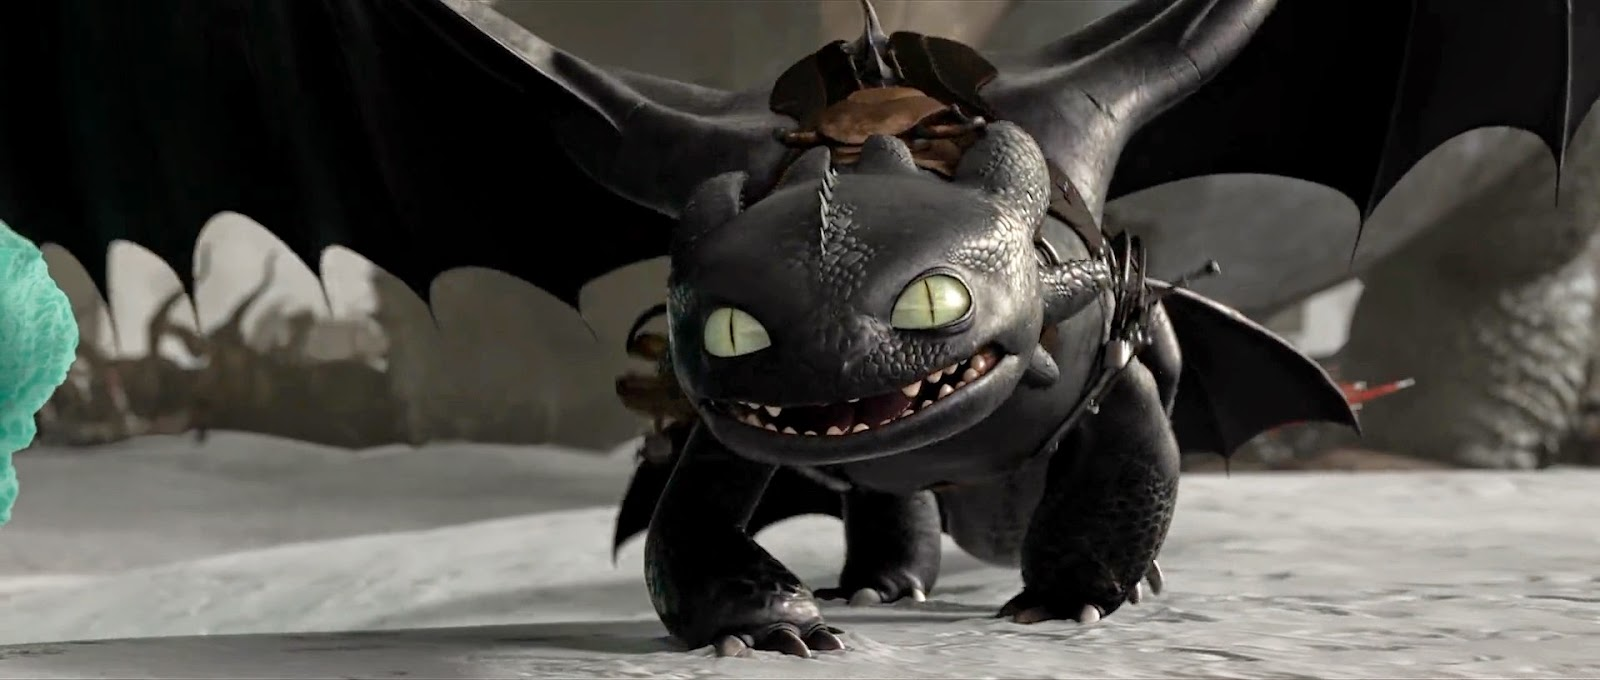 How to Train Your Dragon 2 (2014) S3 s How to Train Your Dragon 2 (2014)